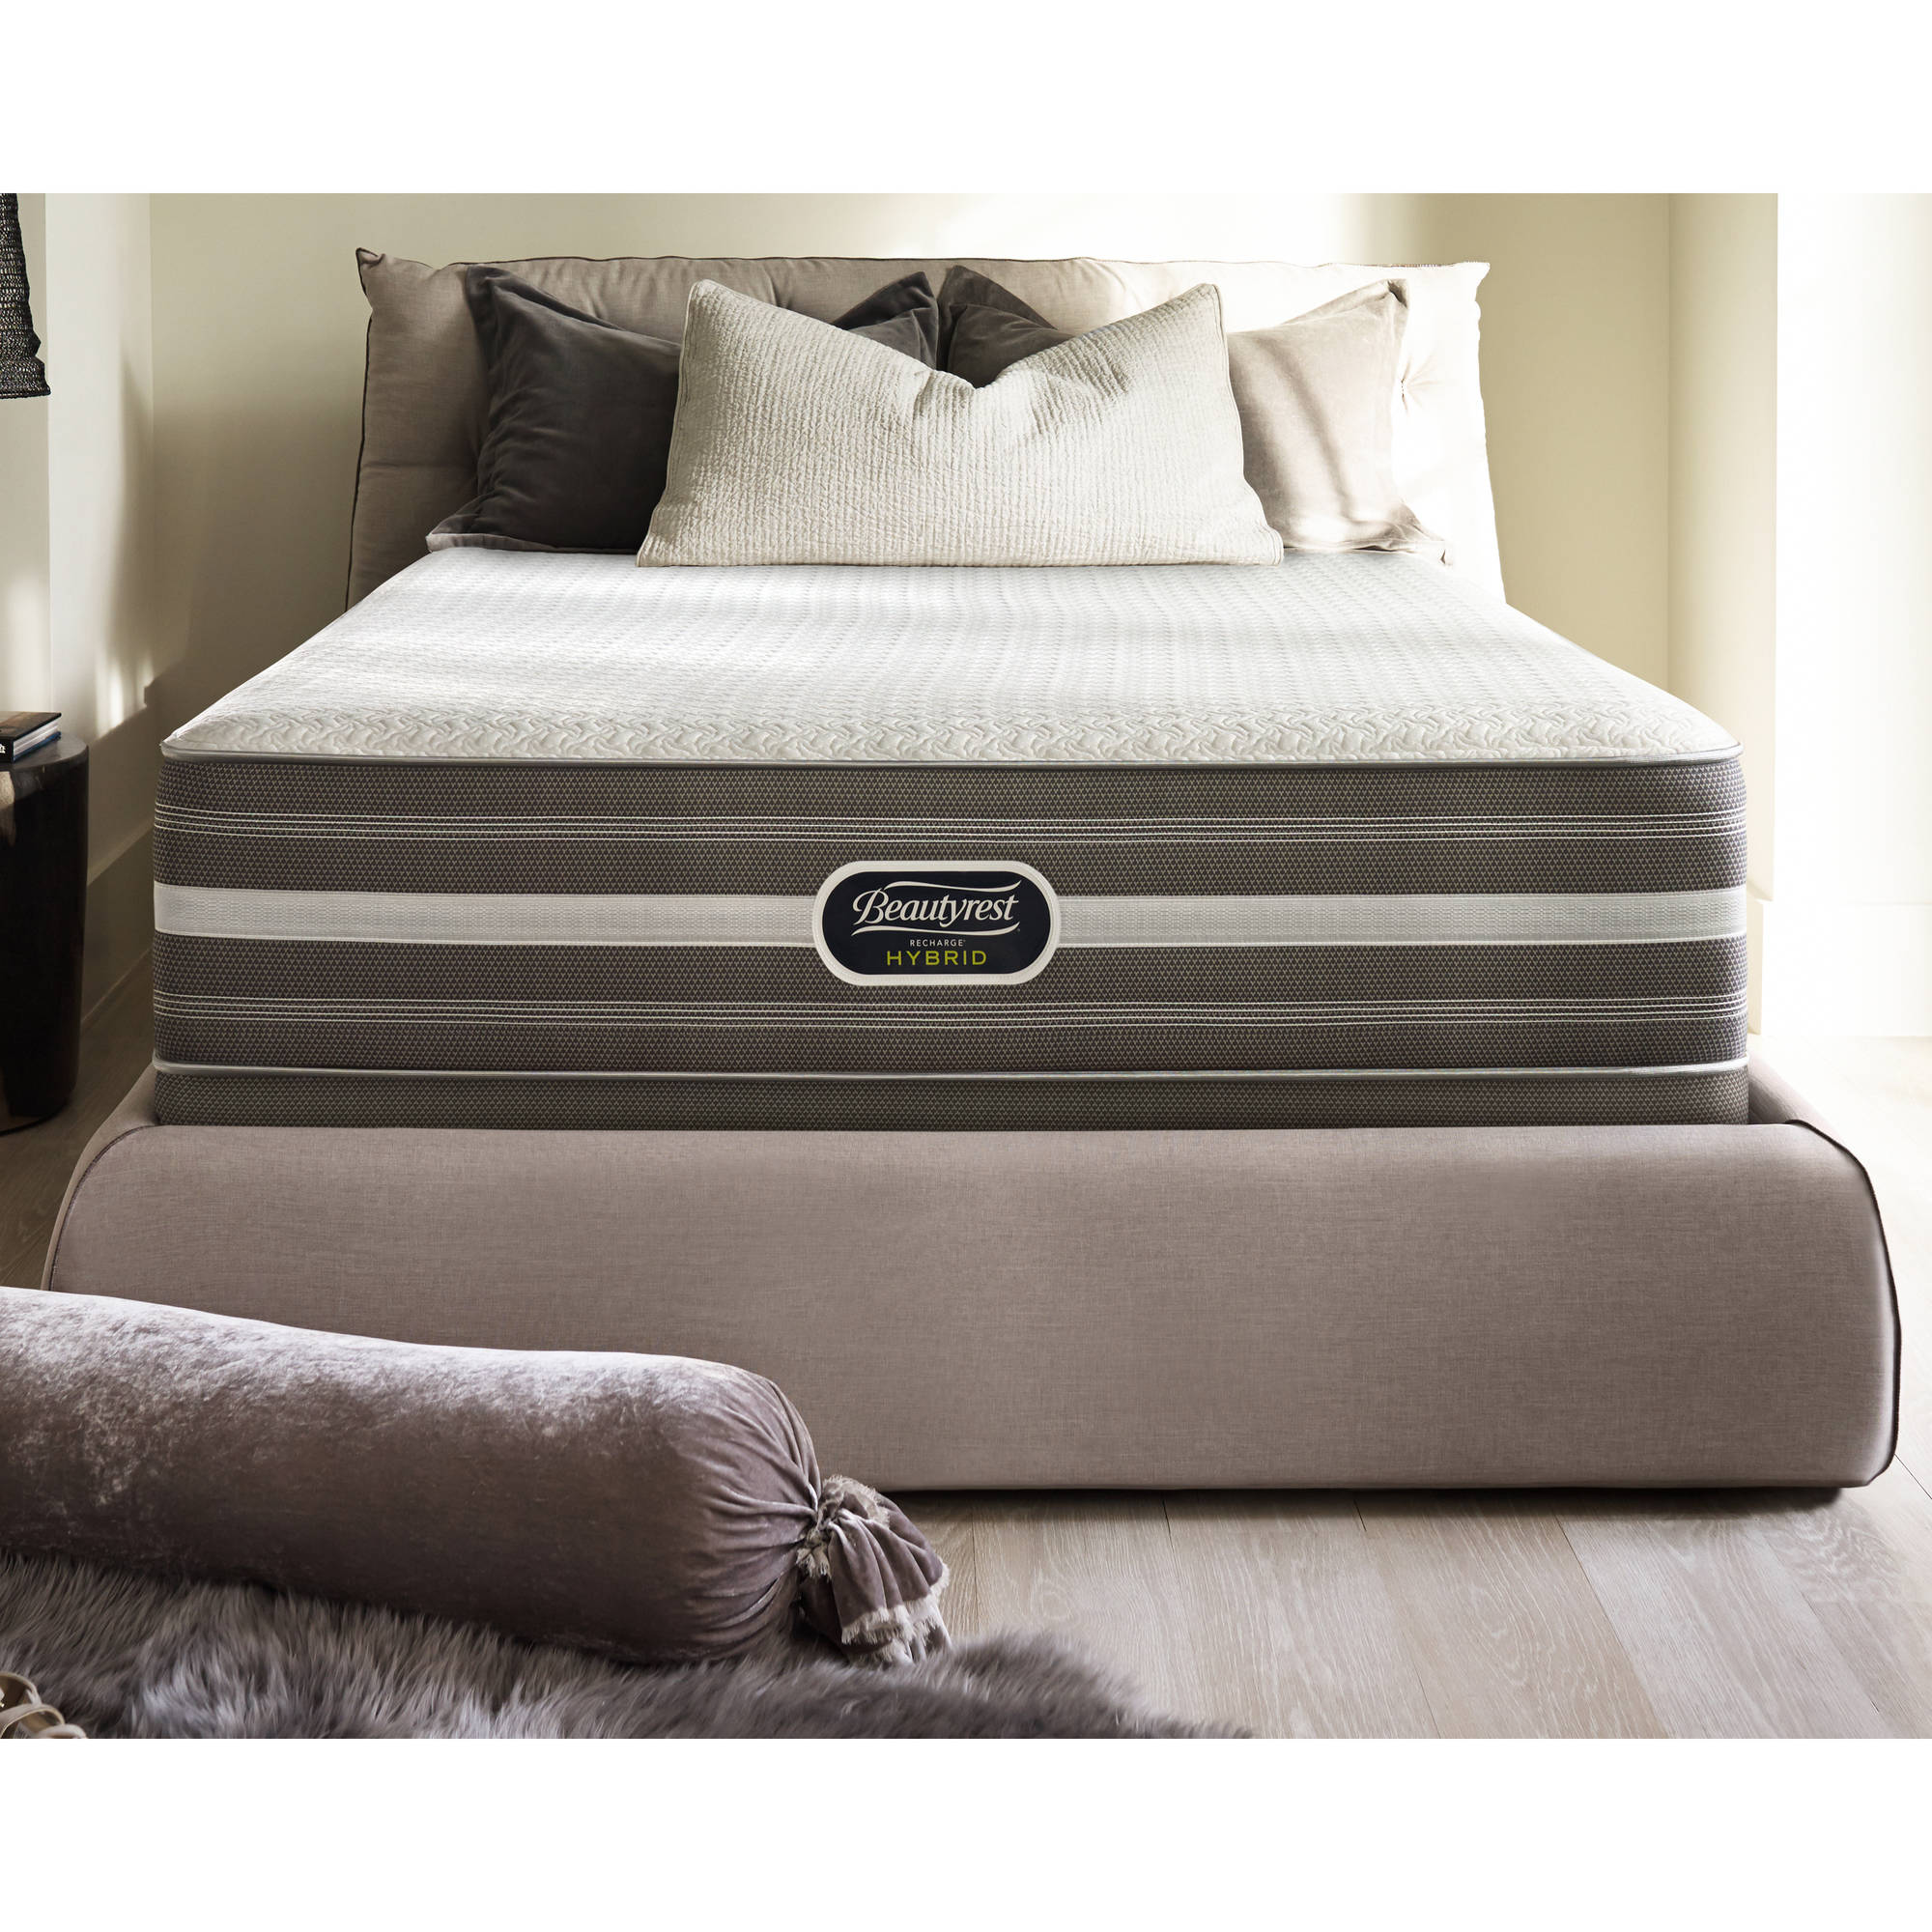 "Beautyrest Recharge Hybrid Wyloway Ultimate 14"" Plush Mattress, Multiple Sizes"